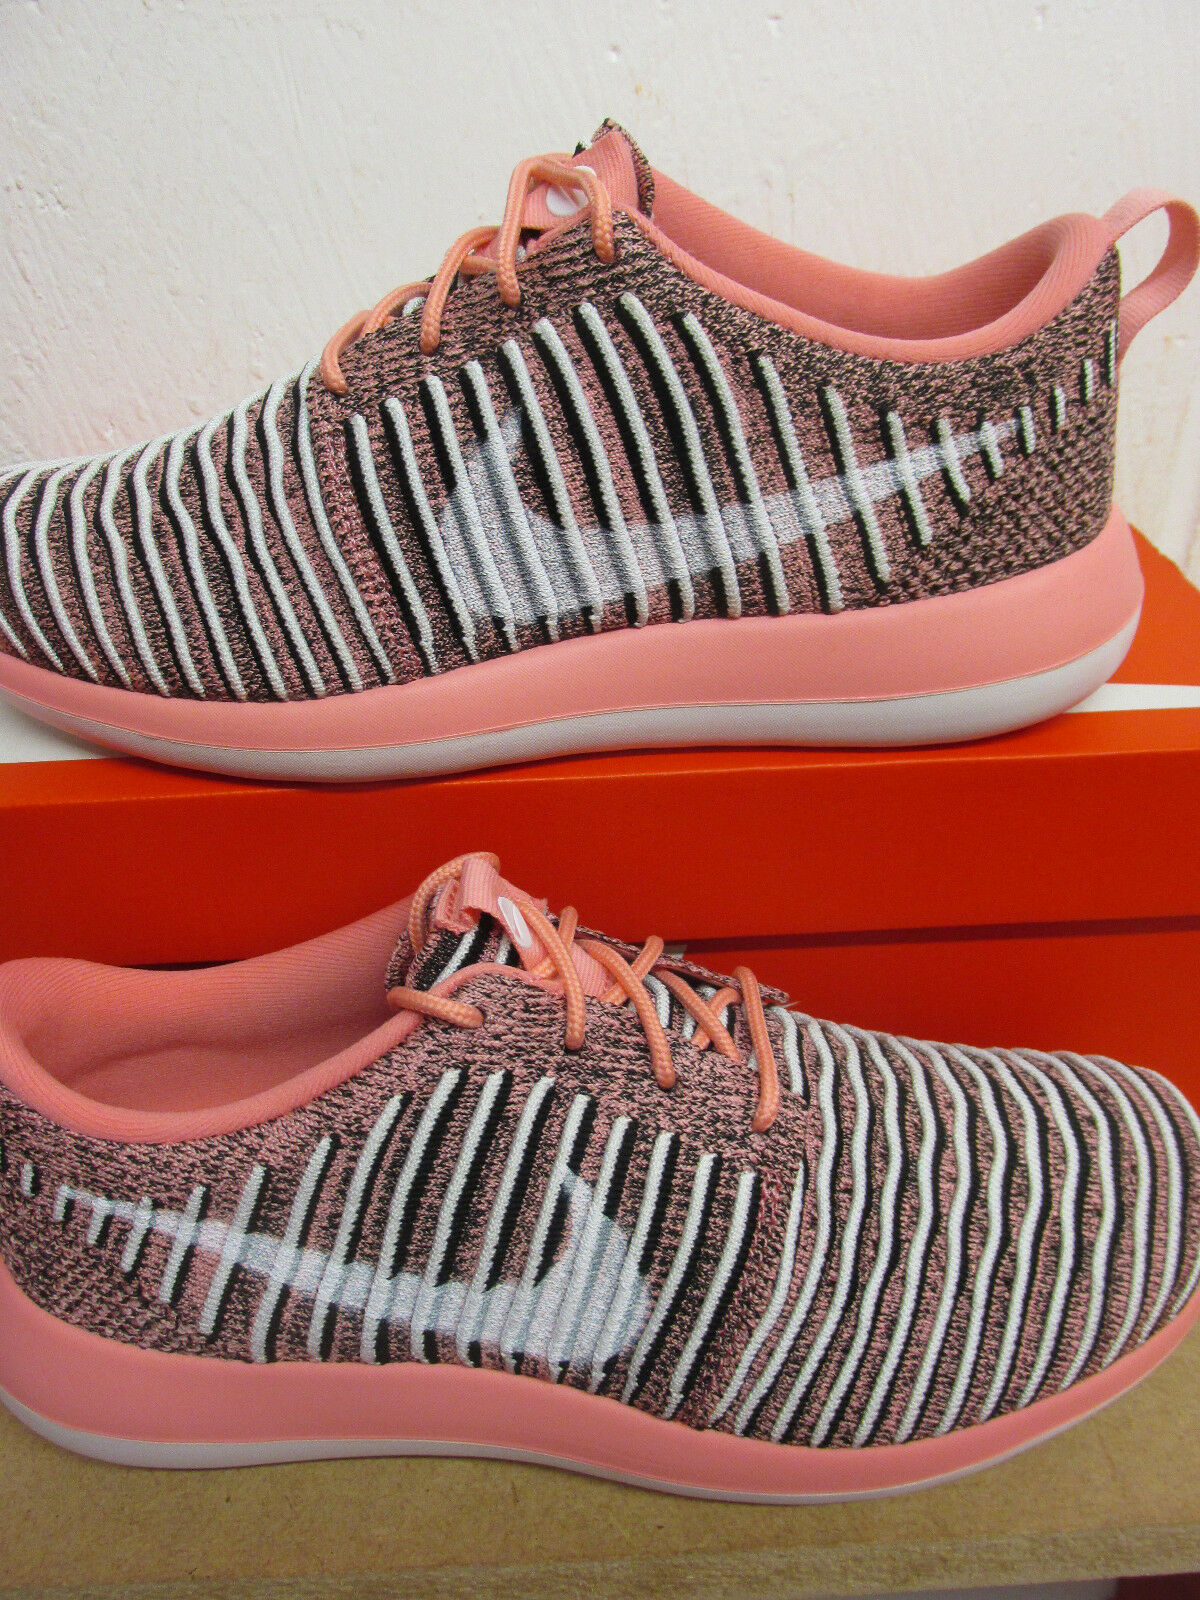 Nike Womens Roshe Two Flyknit Running Trainers Trainers Trainers 844929 801 Sneakers shoes caddef